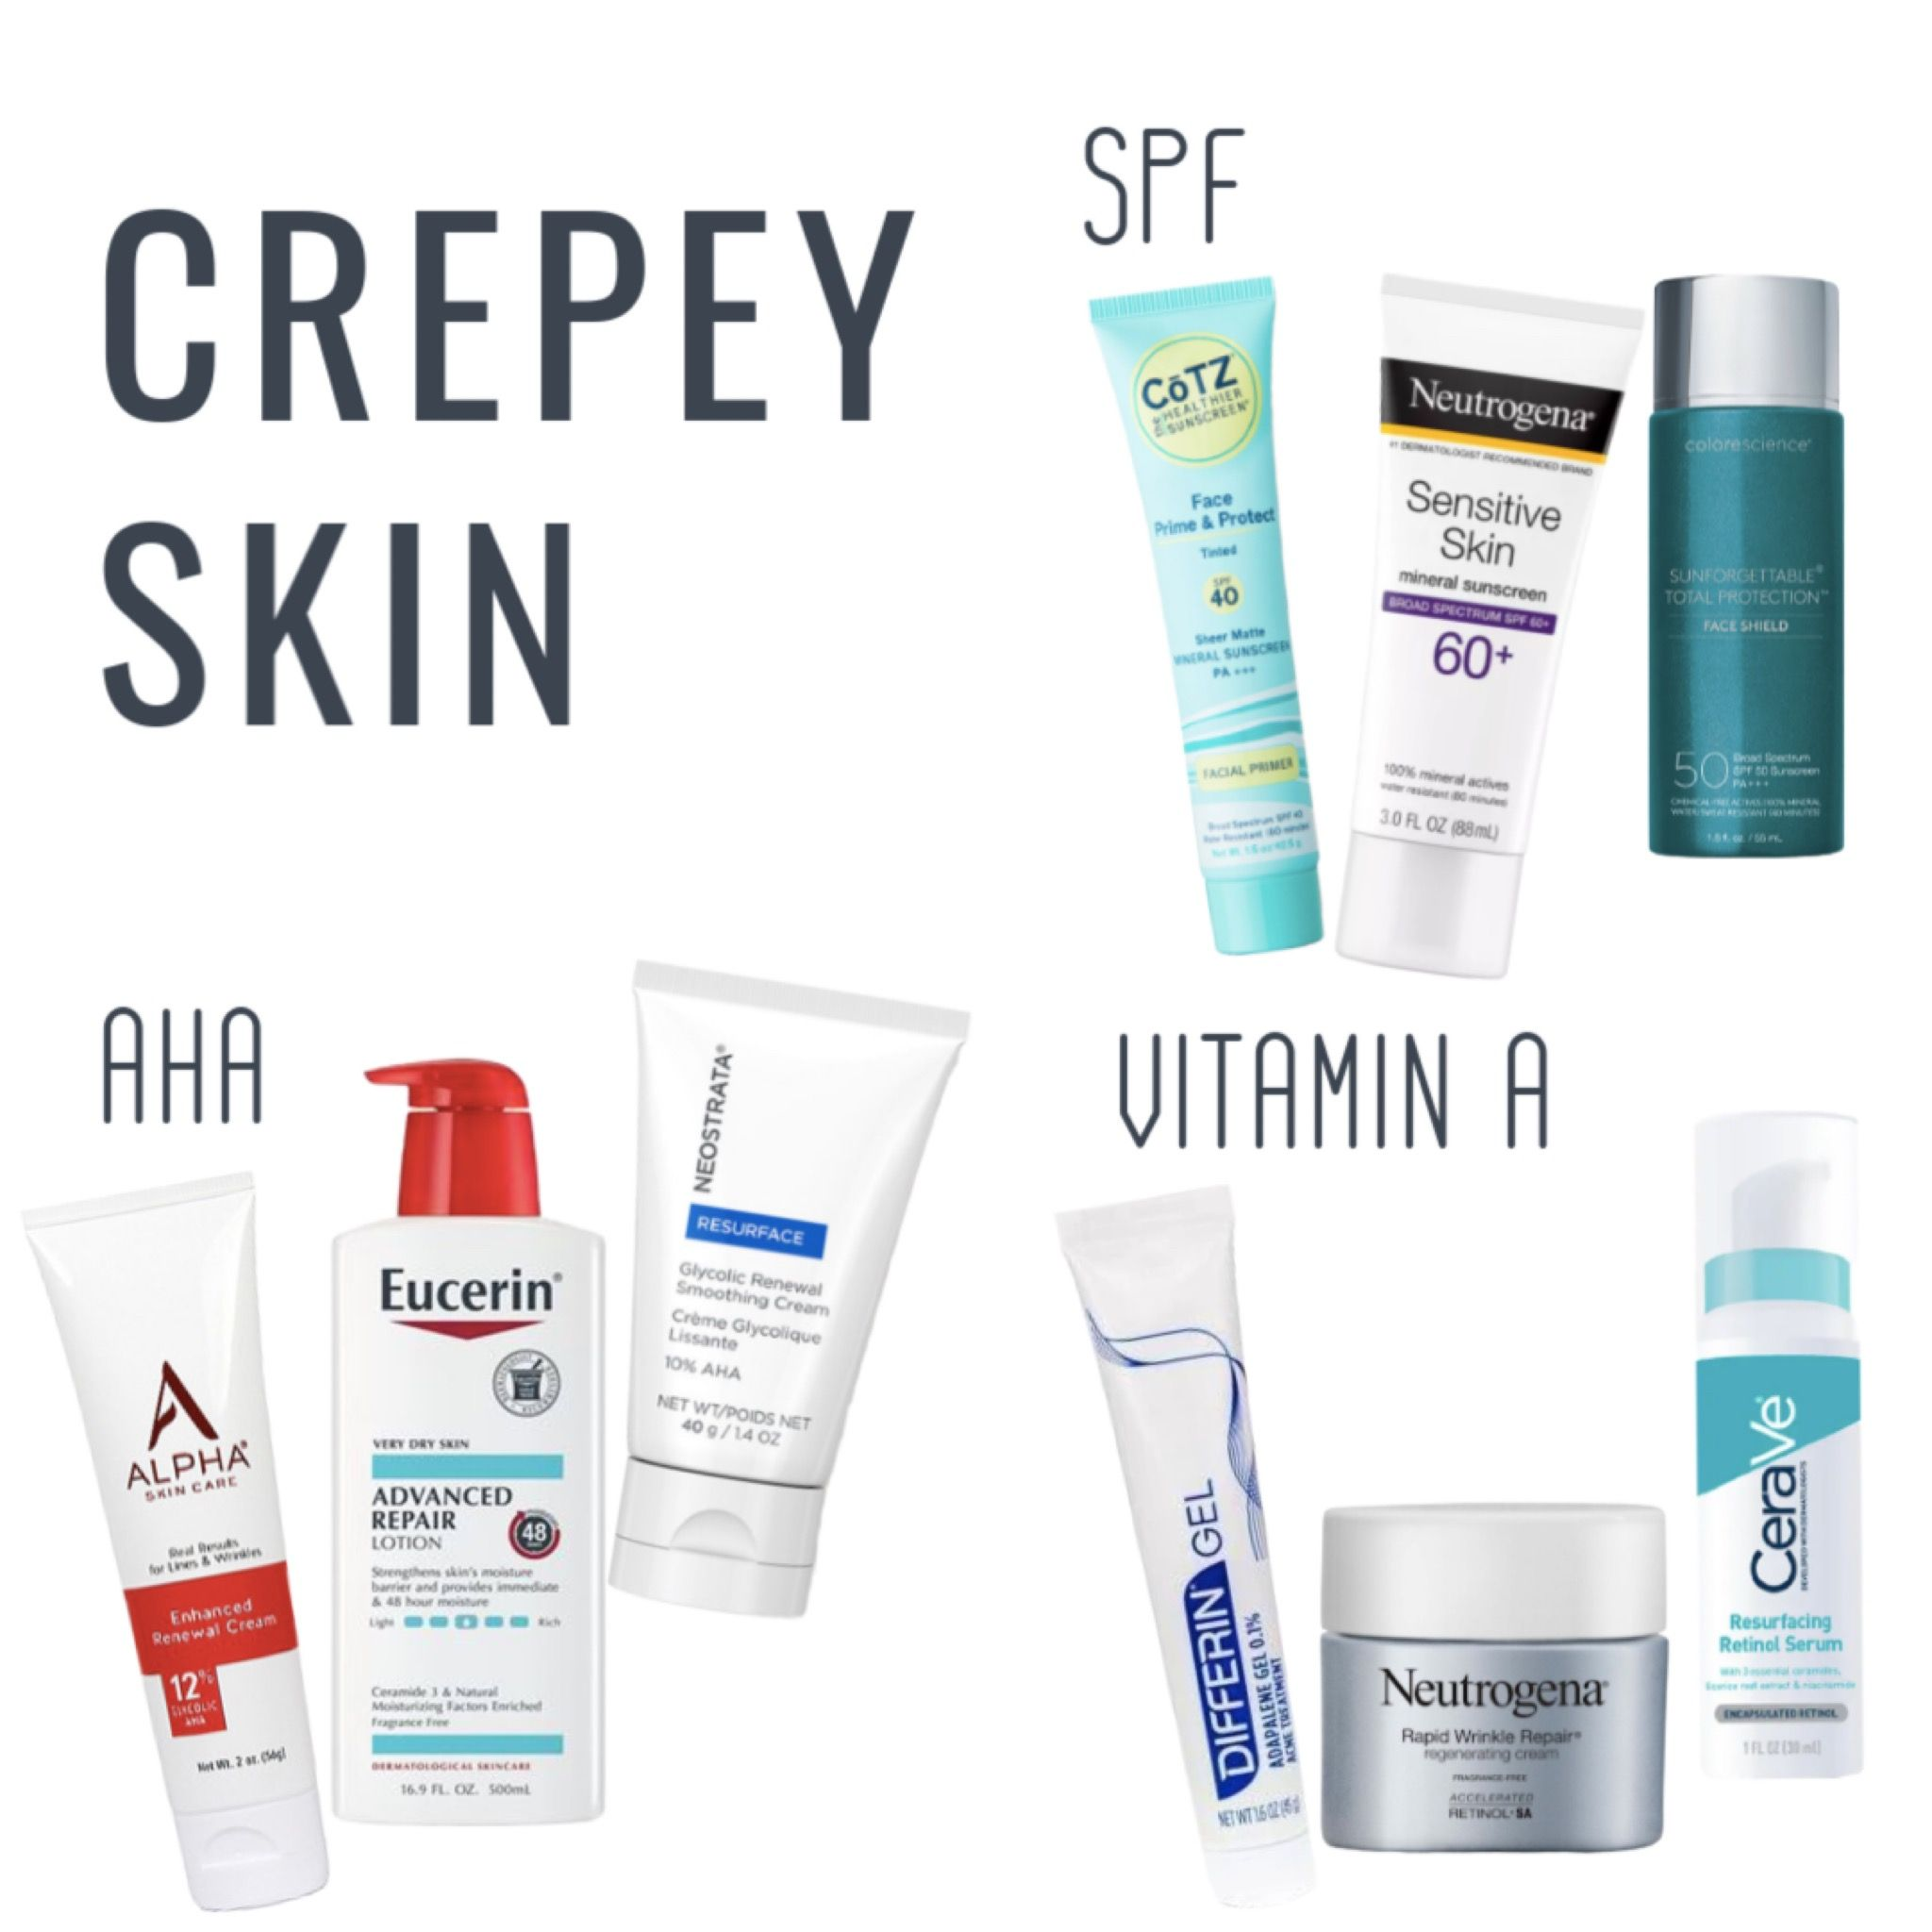 Best Skin Care Products For Crepey Skin Crepey Skin Dr Dray Beauty Skin Care Routine